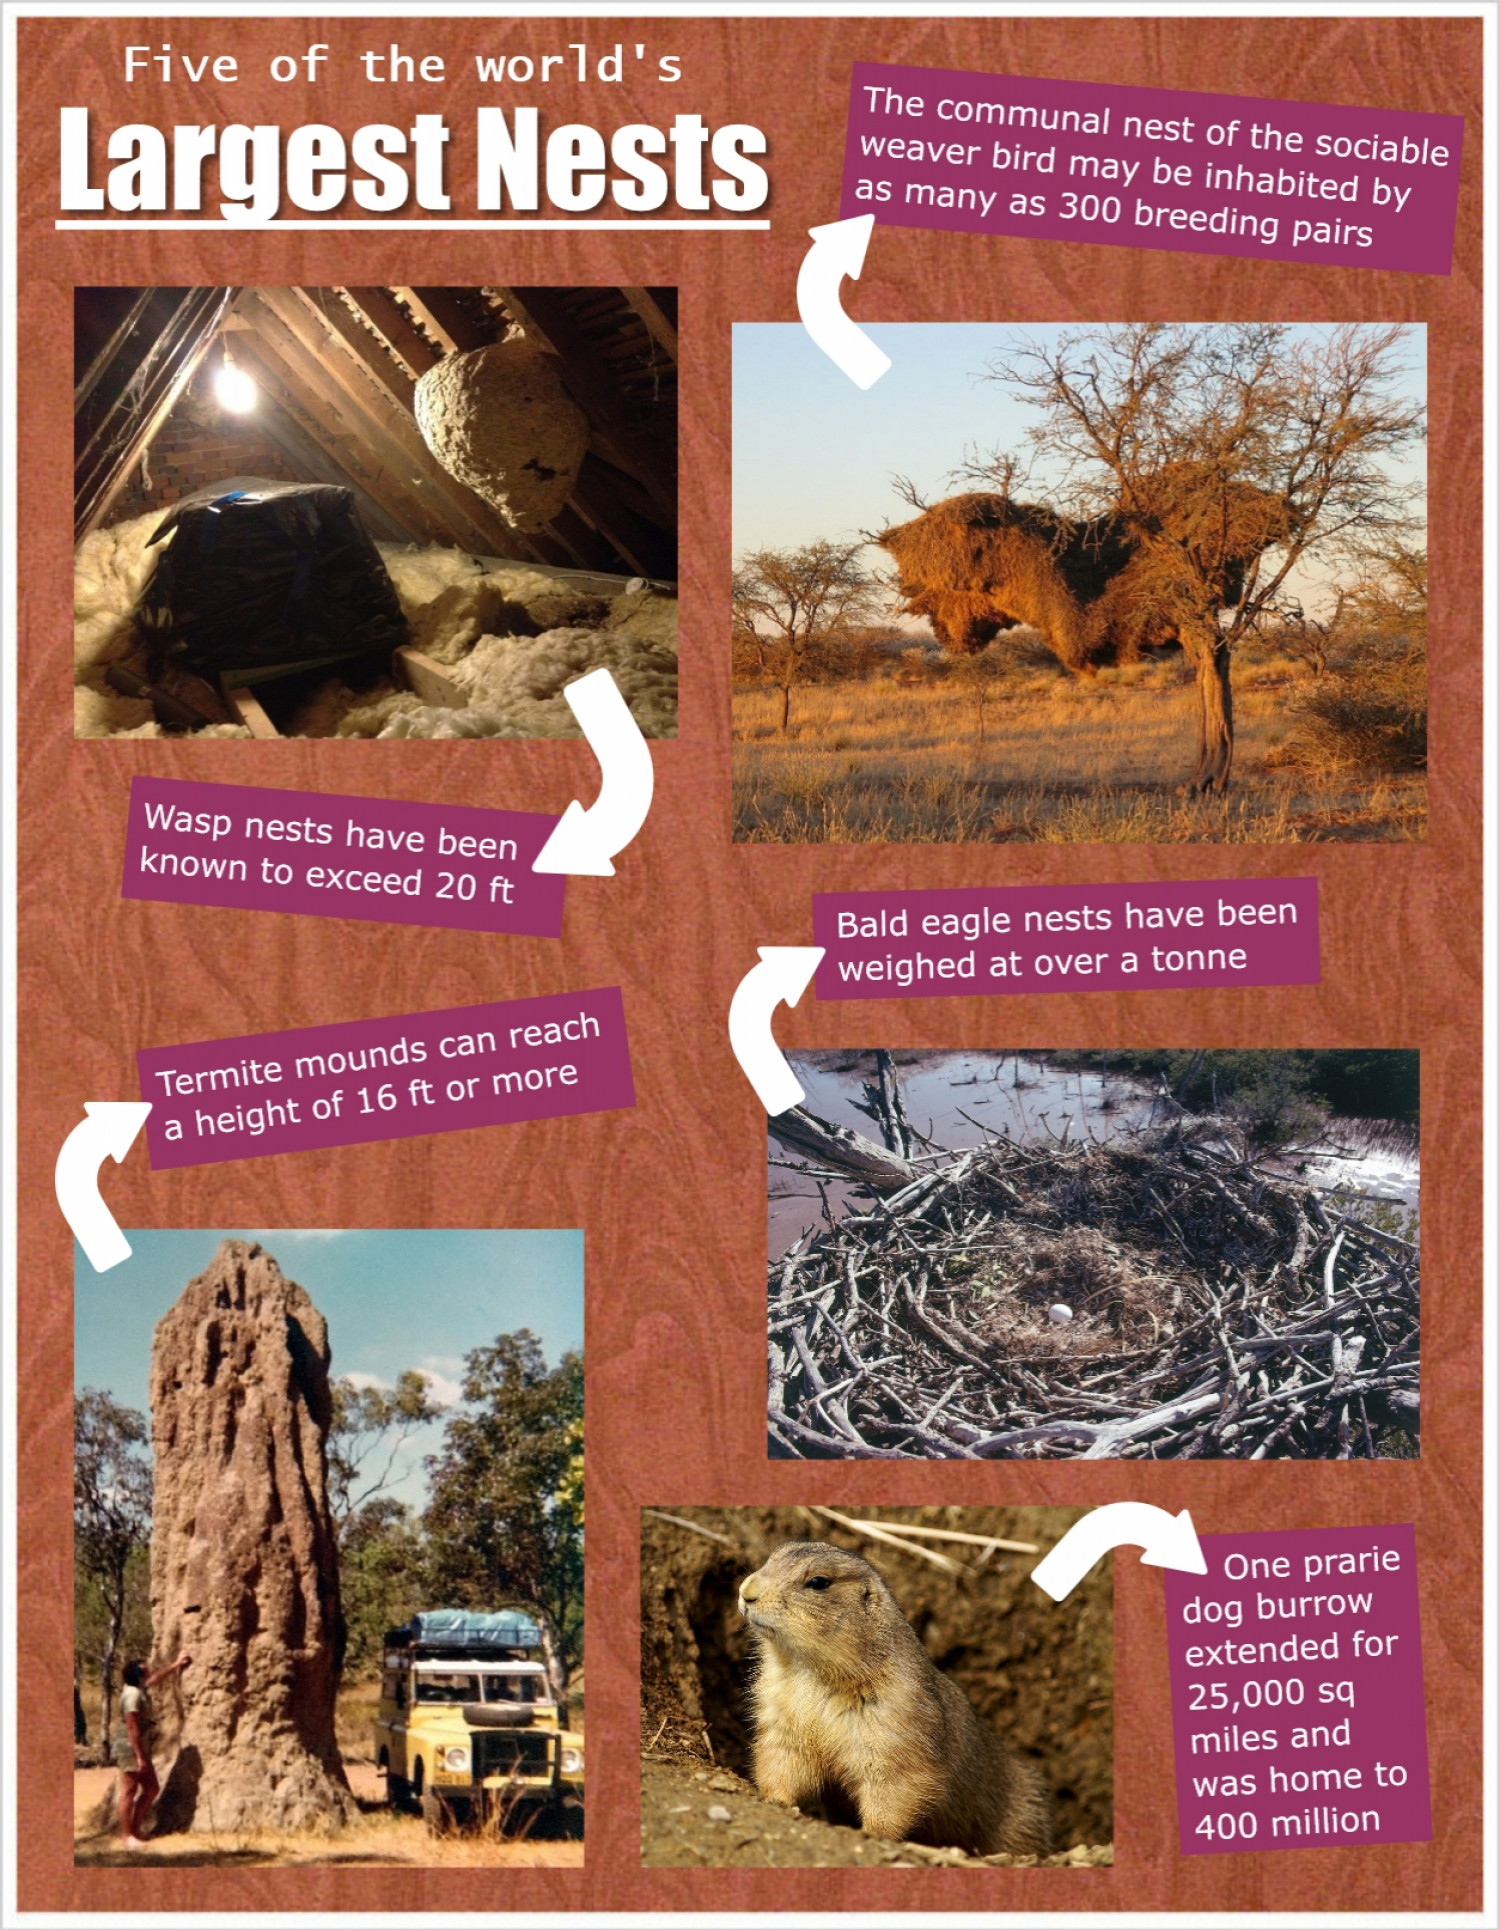 Five of the World's Largest Nests Infographic